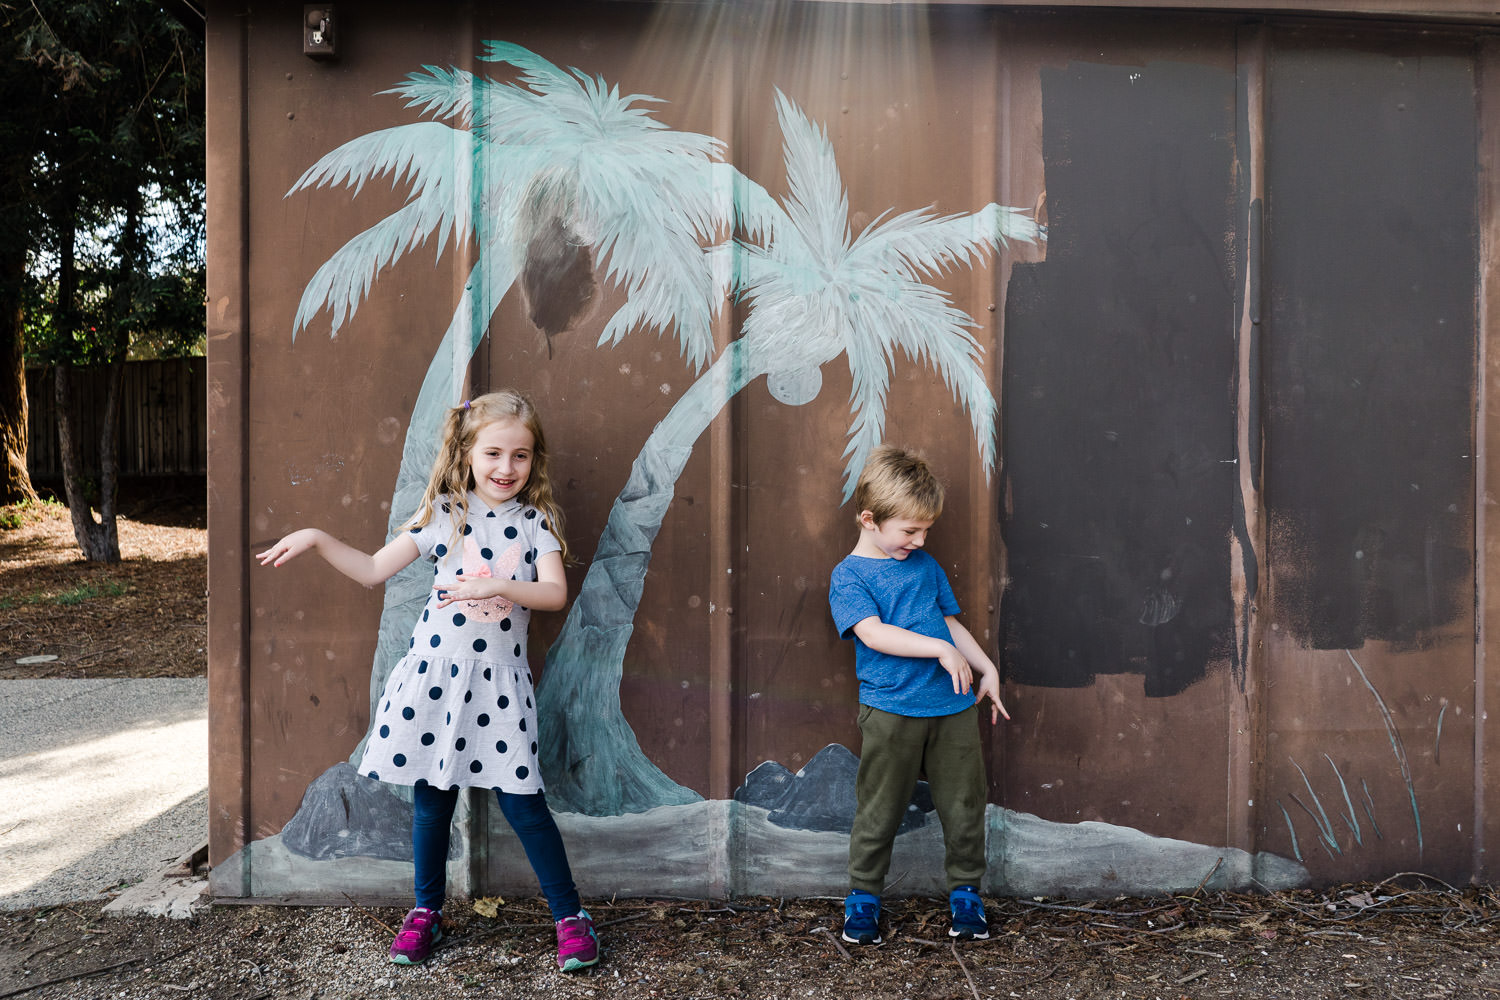 Two children dance in front of a mural of palm trees.